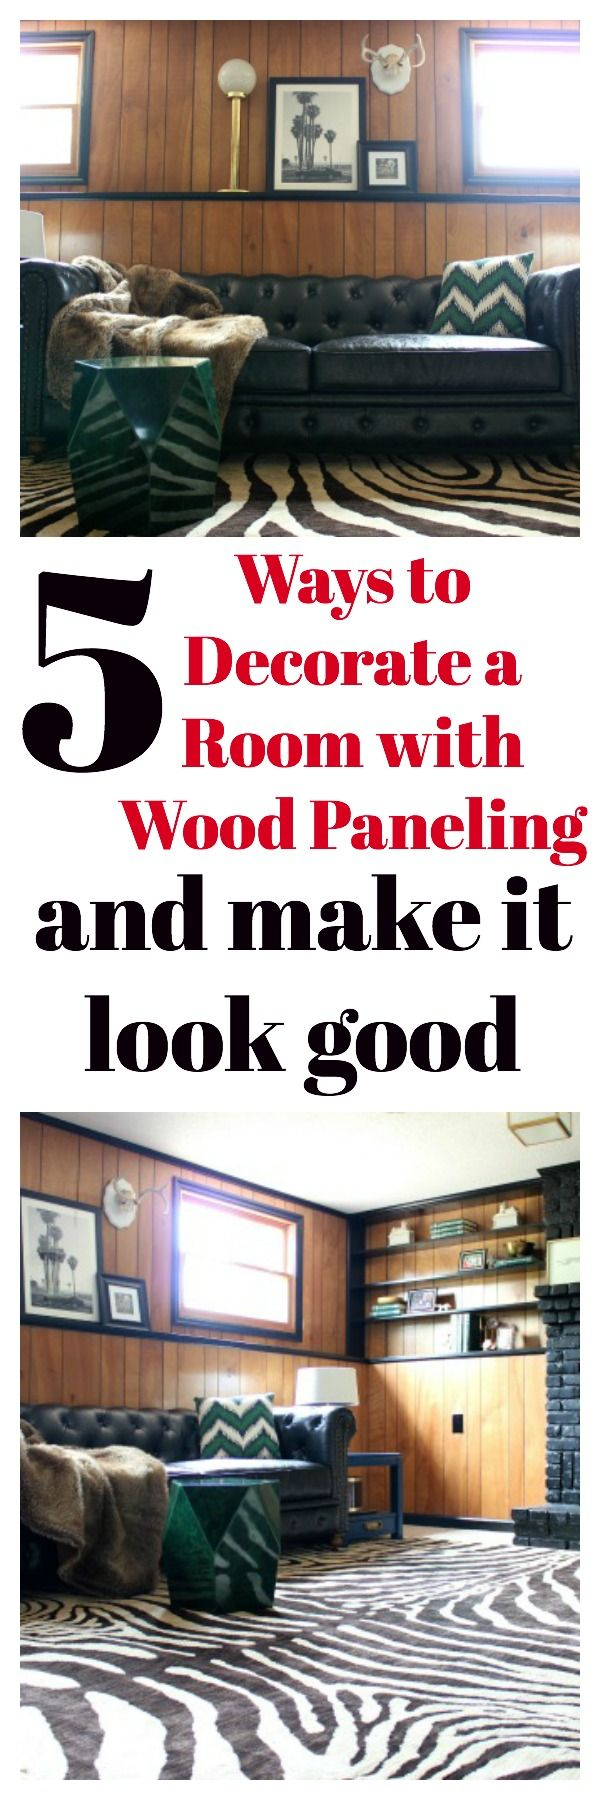 Five Ways to Decorate a Room with Wood Paneling and Make It Look Good | These are really great ideas to save some money and to help you learn…